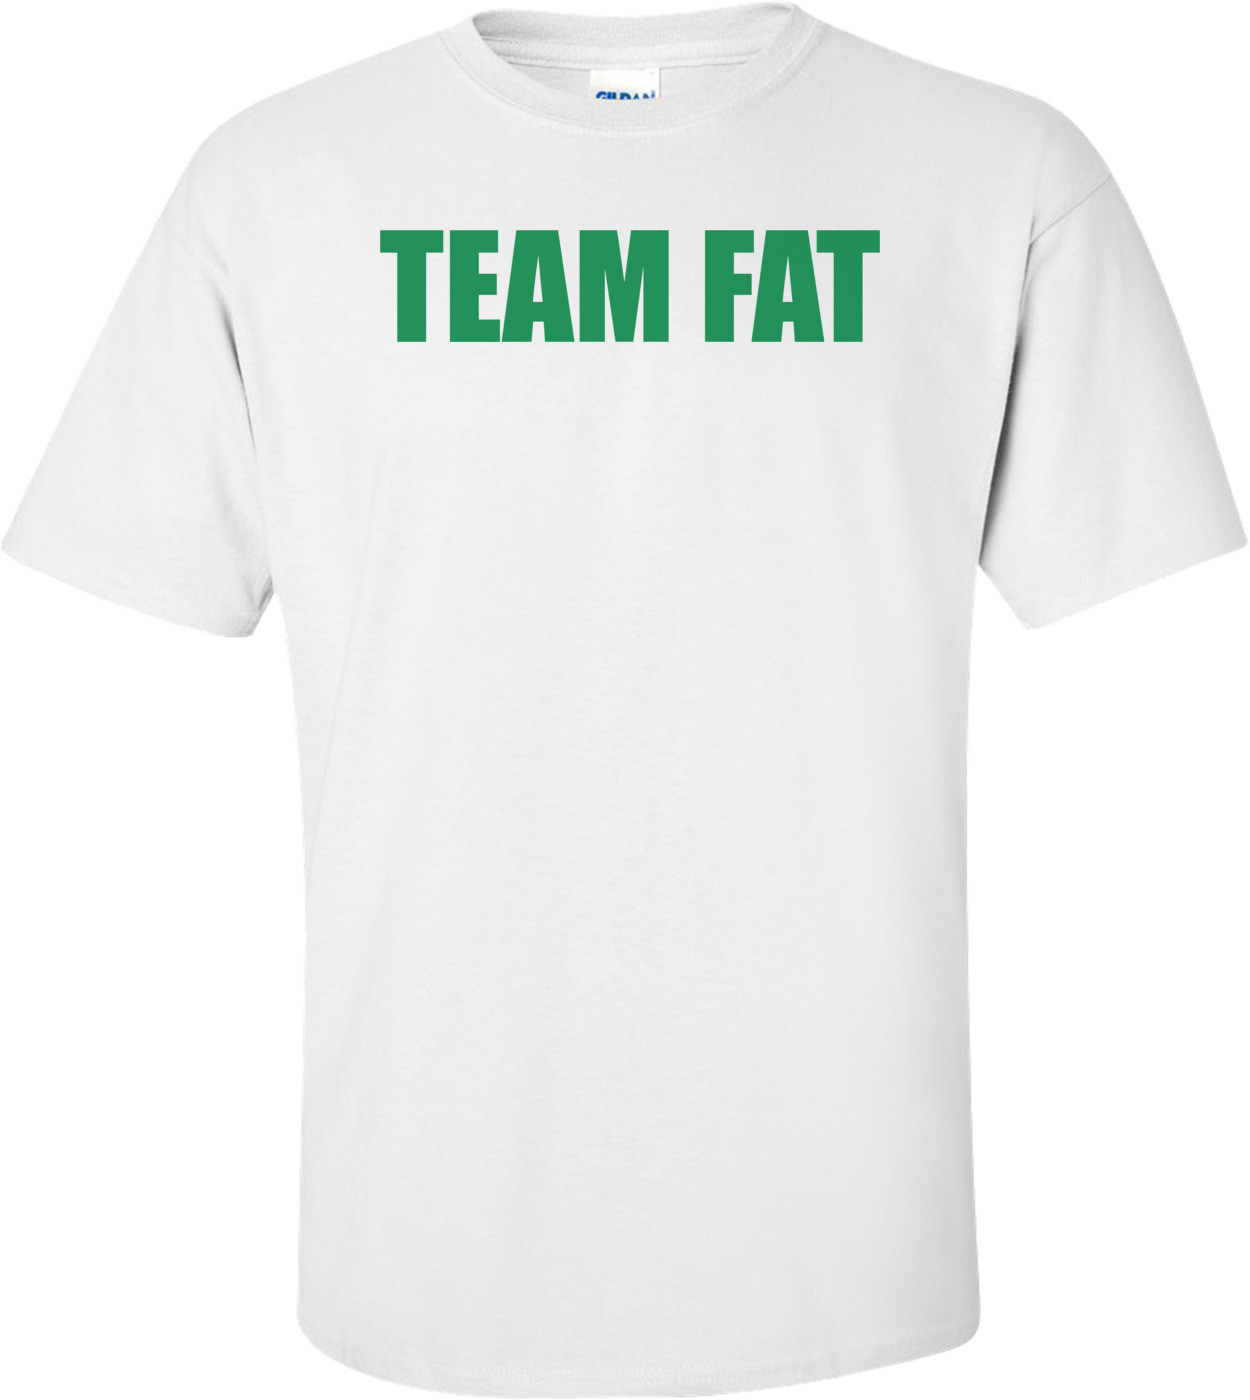 TEAM FAT Shirt